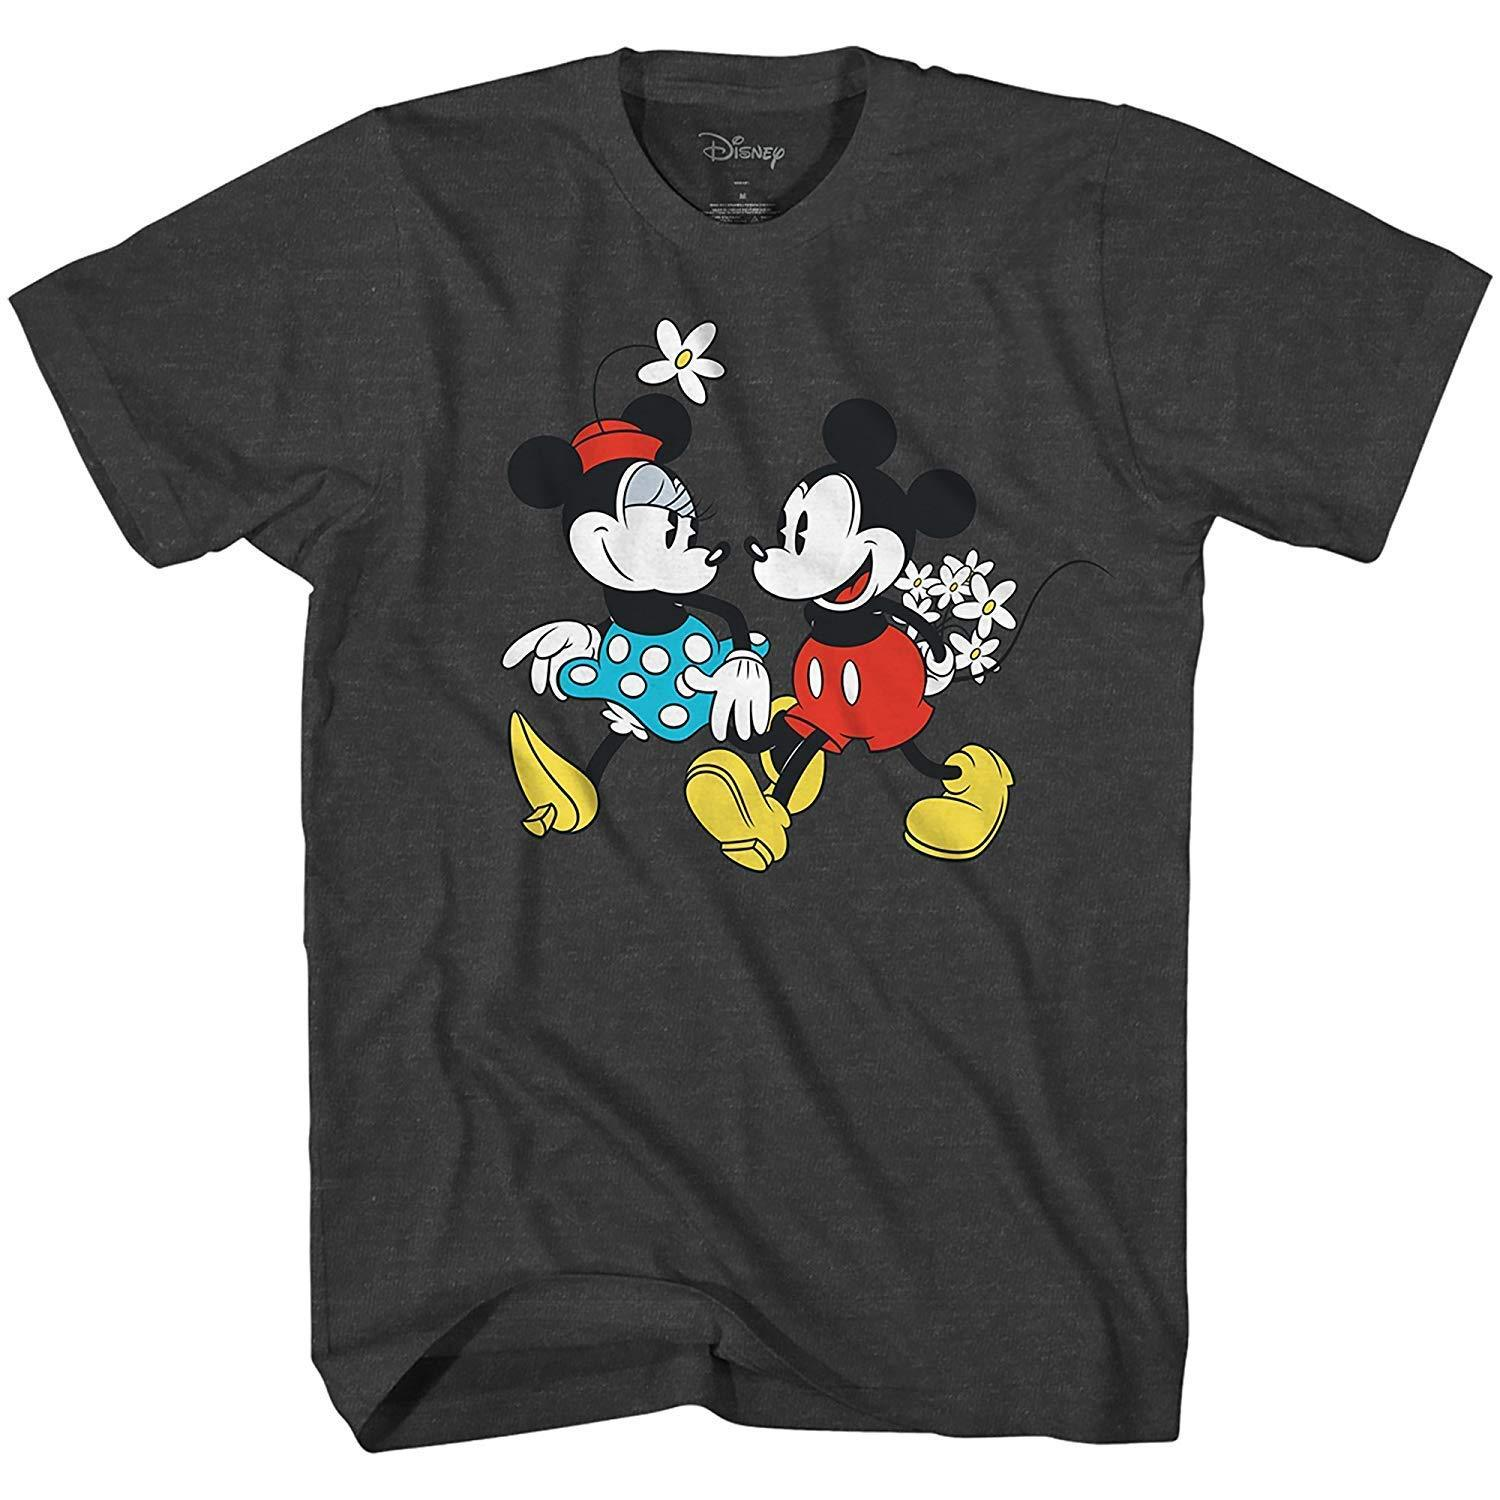 Disney Mickey Mouse Minnie Hand in Hand Disneyland World Retro Classic Vintage Tee Funny Humor Adult Mens Graphic T-Shirt Apparel